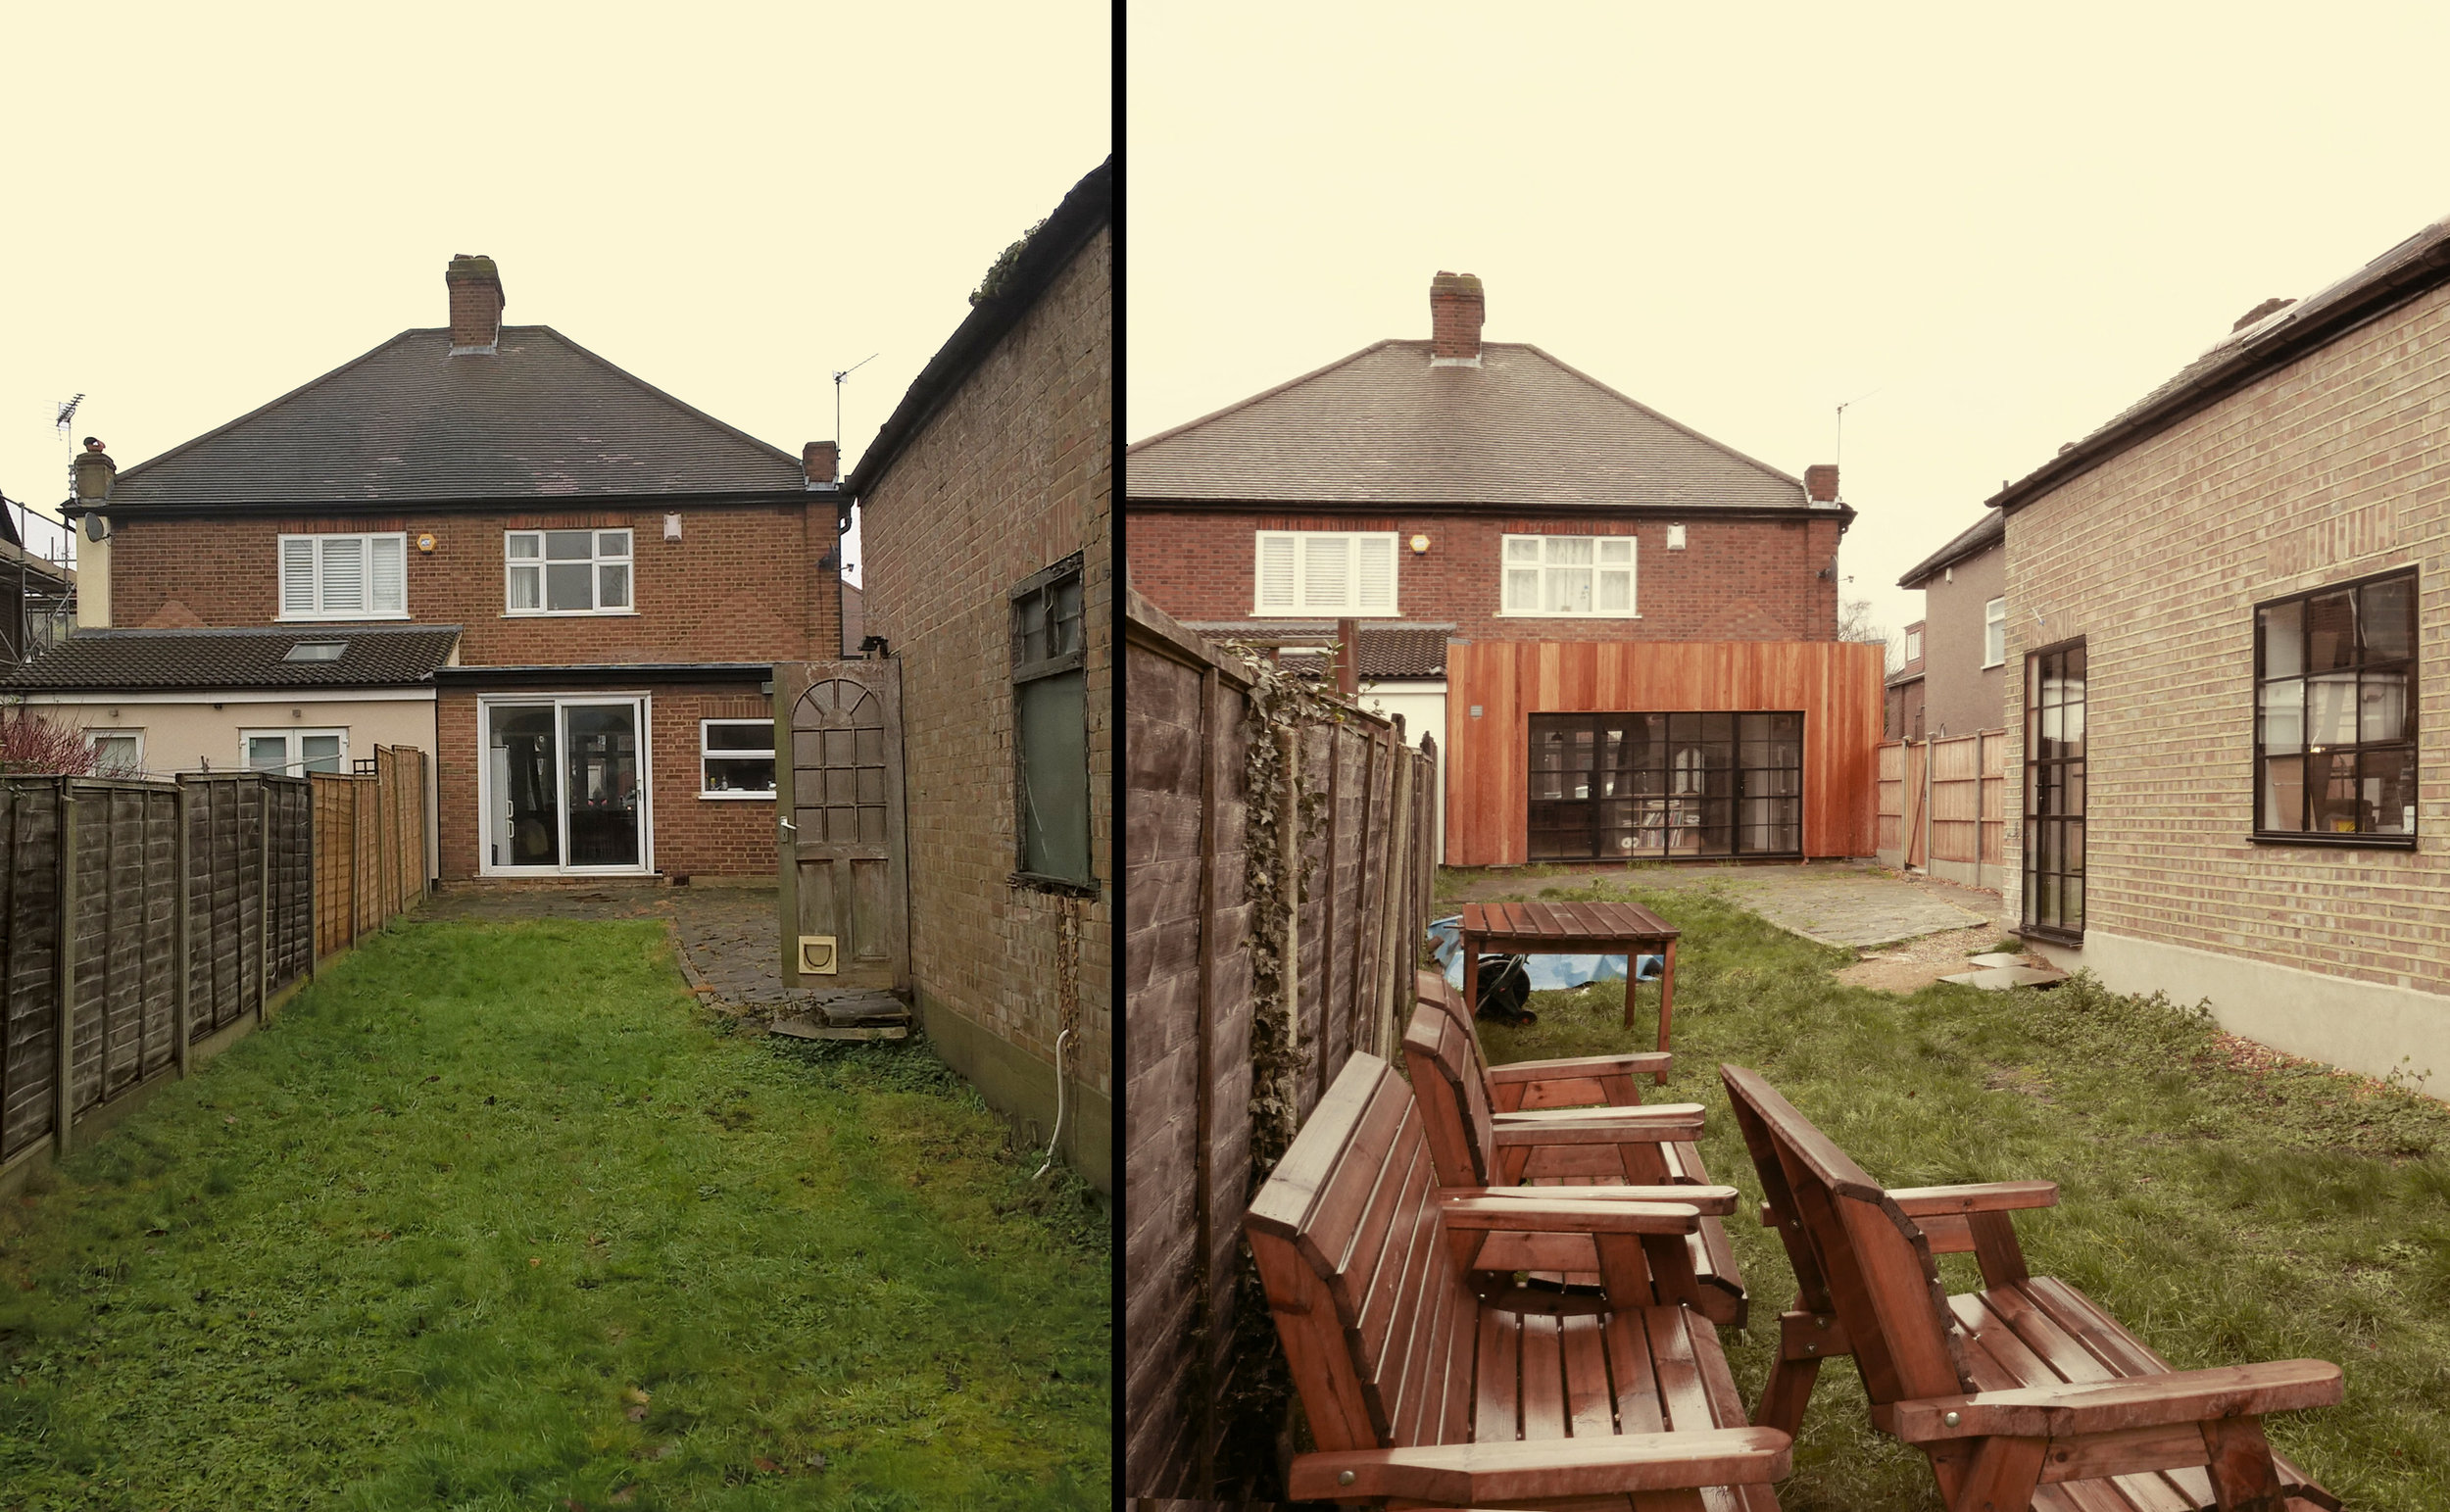 Home extension refurbishment makeover walthamstow e17 East London